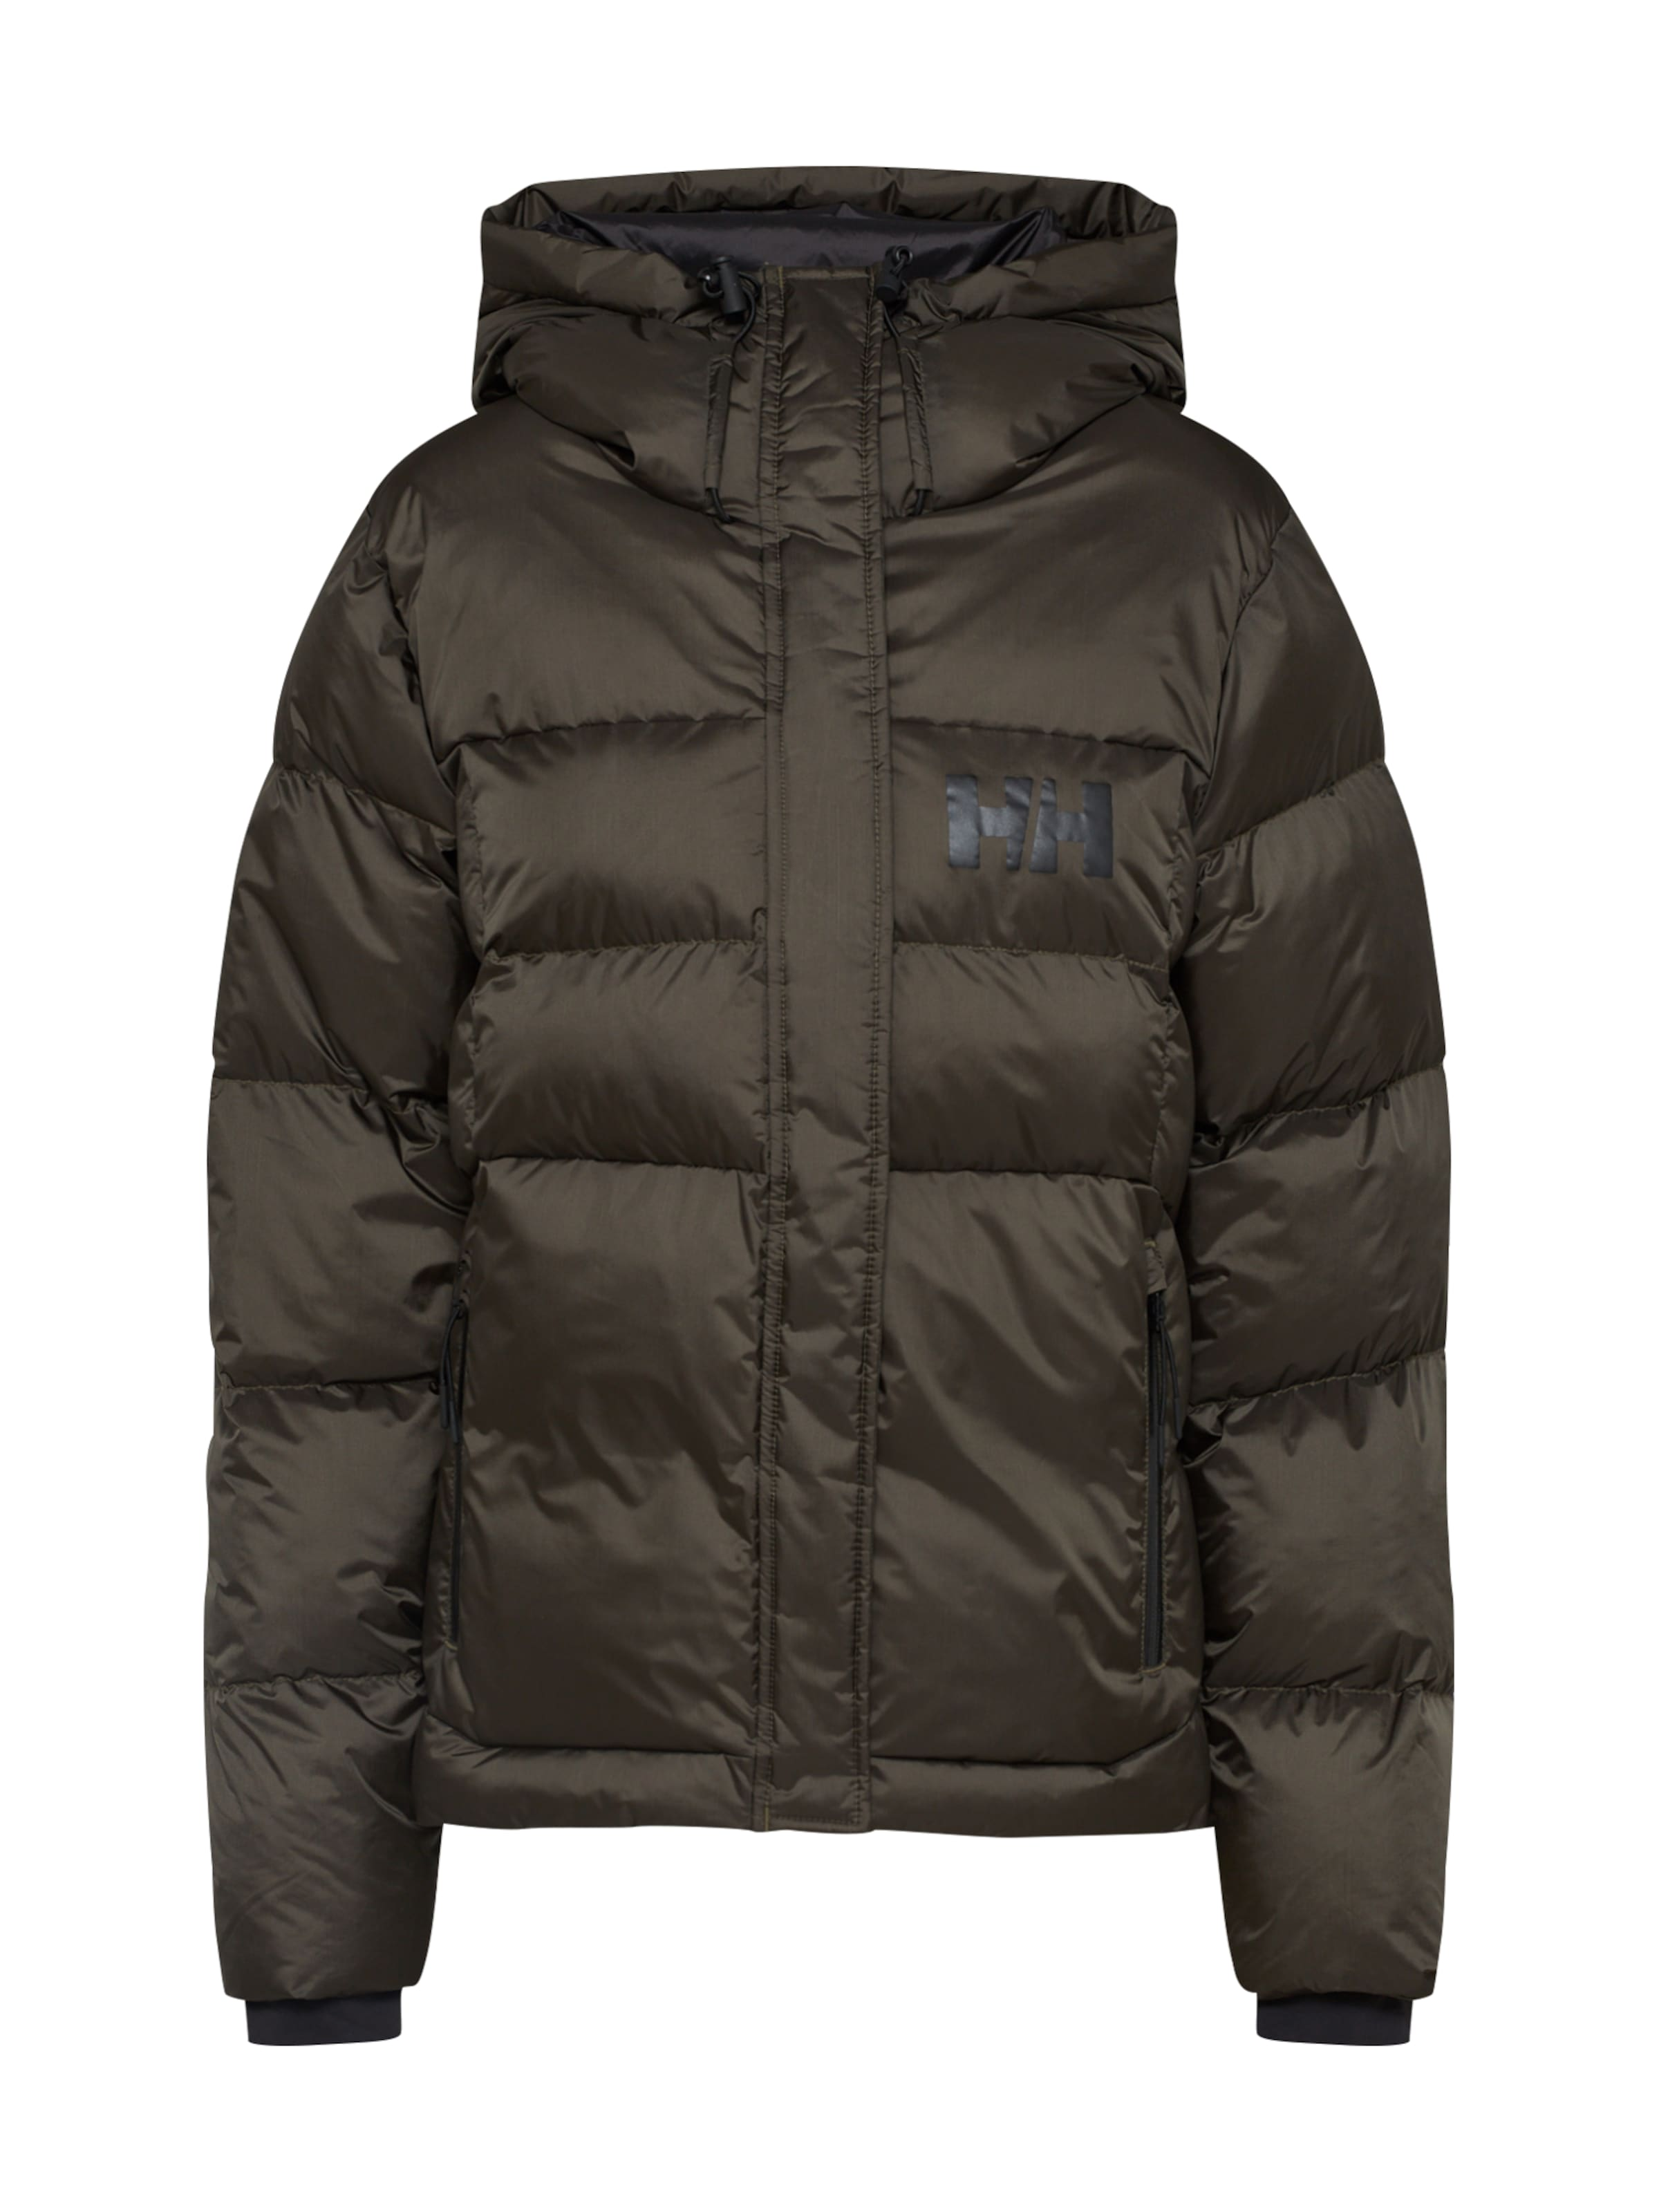 Helly D'hiver In Helly In HansenVeste Olive Helly HansenVeste D'hiver Olive HansenVeste kXiZPuO